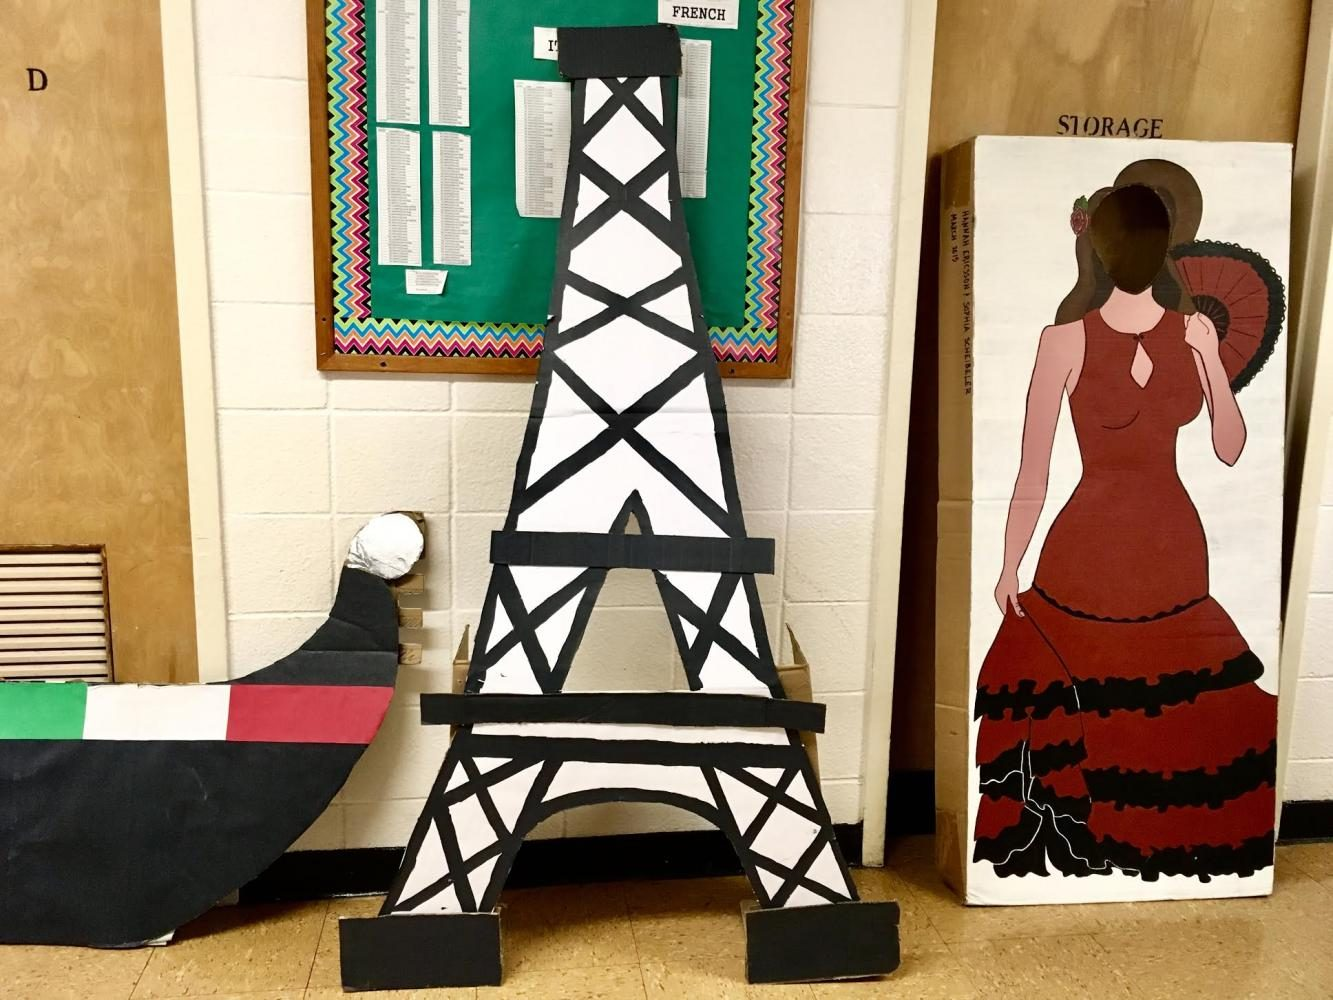 Students+in+the+Foreign+Language+Honor+Society+have+created+cardboard+cutouts+of+the+Eiffel+Tower+and+a+flamenco+dancer+for+French+Day+and+Spanish+Day%2C+respectively.